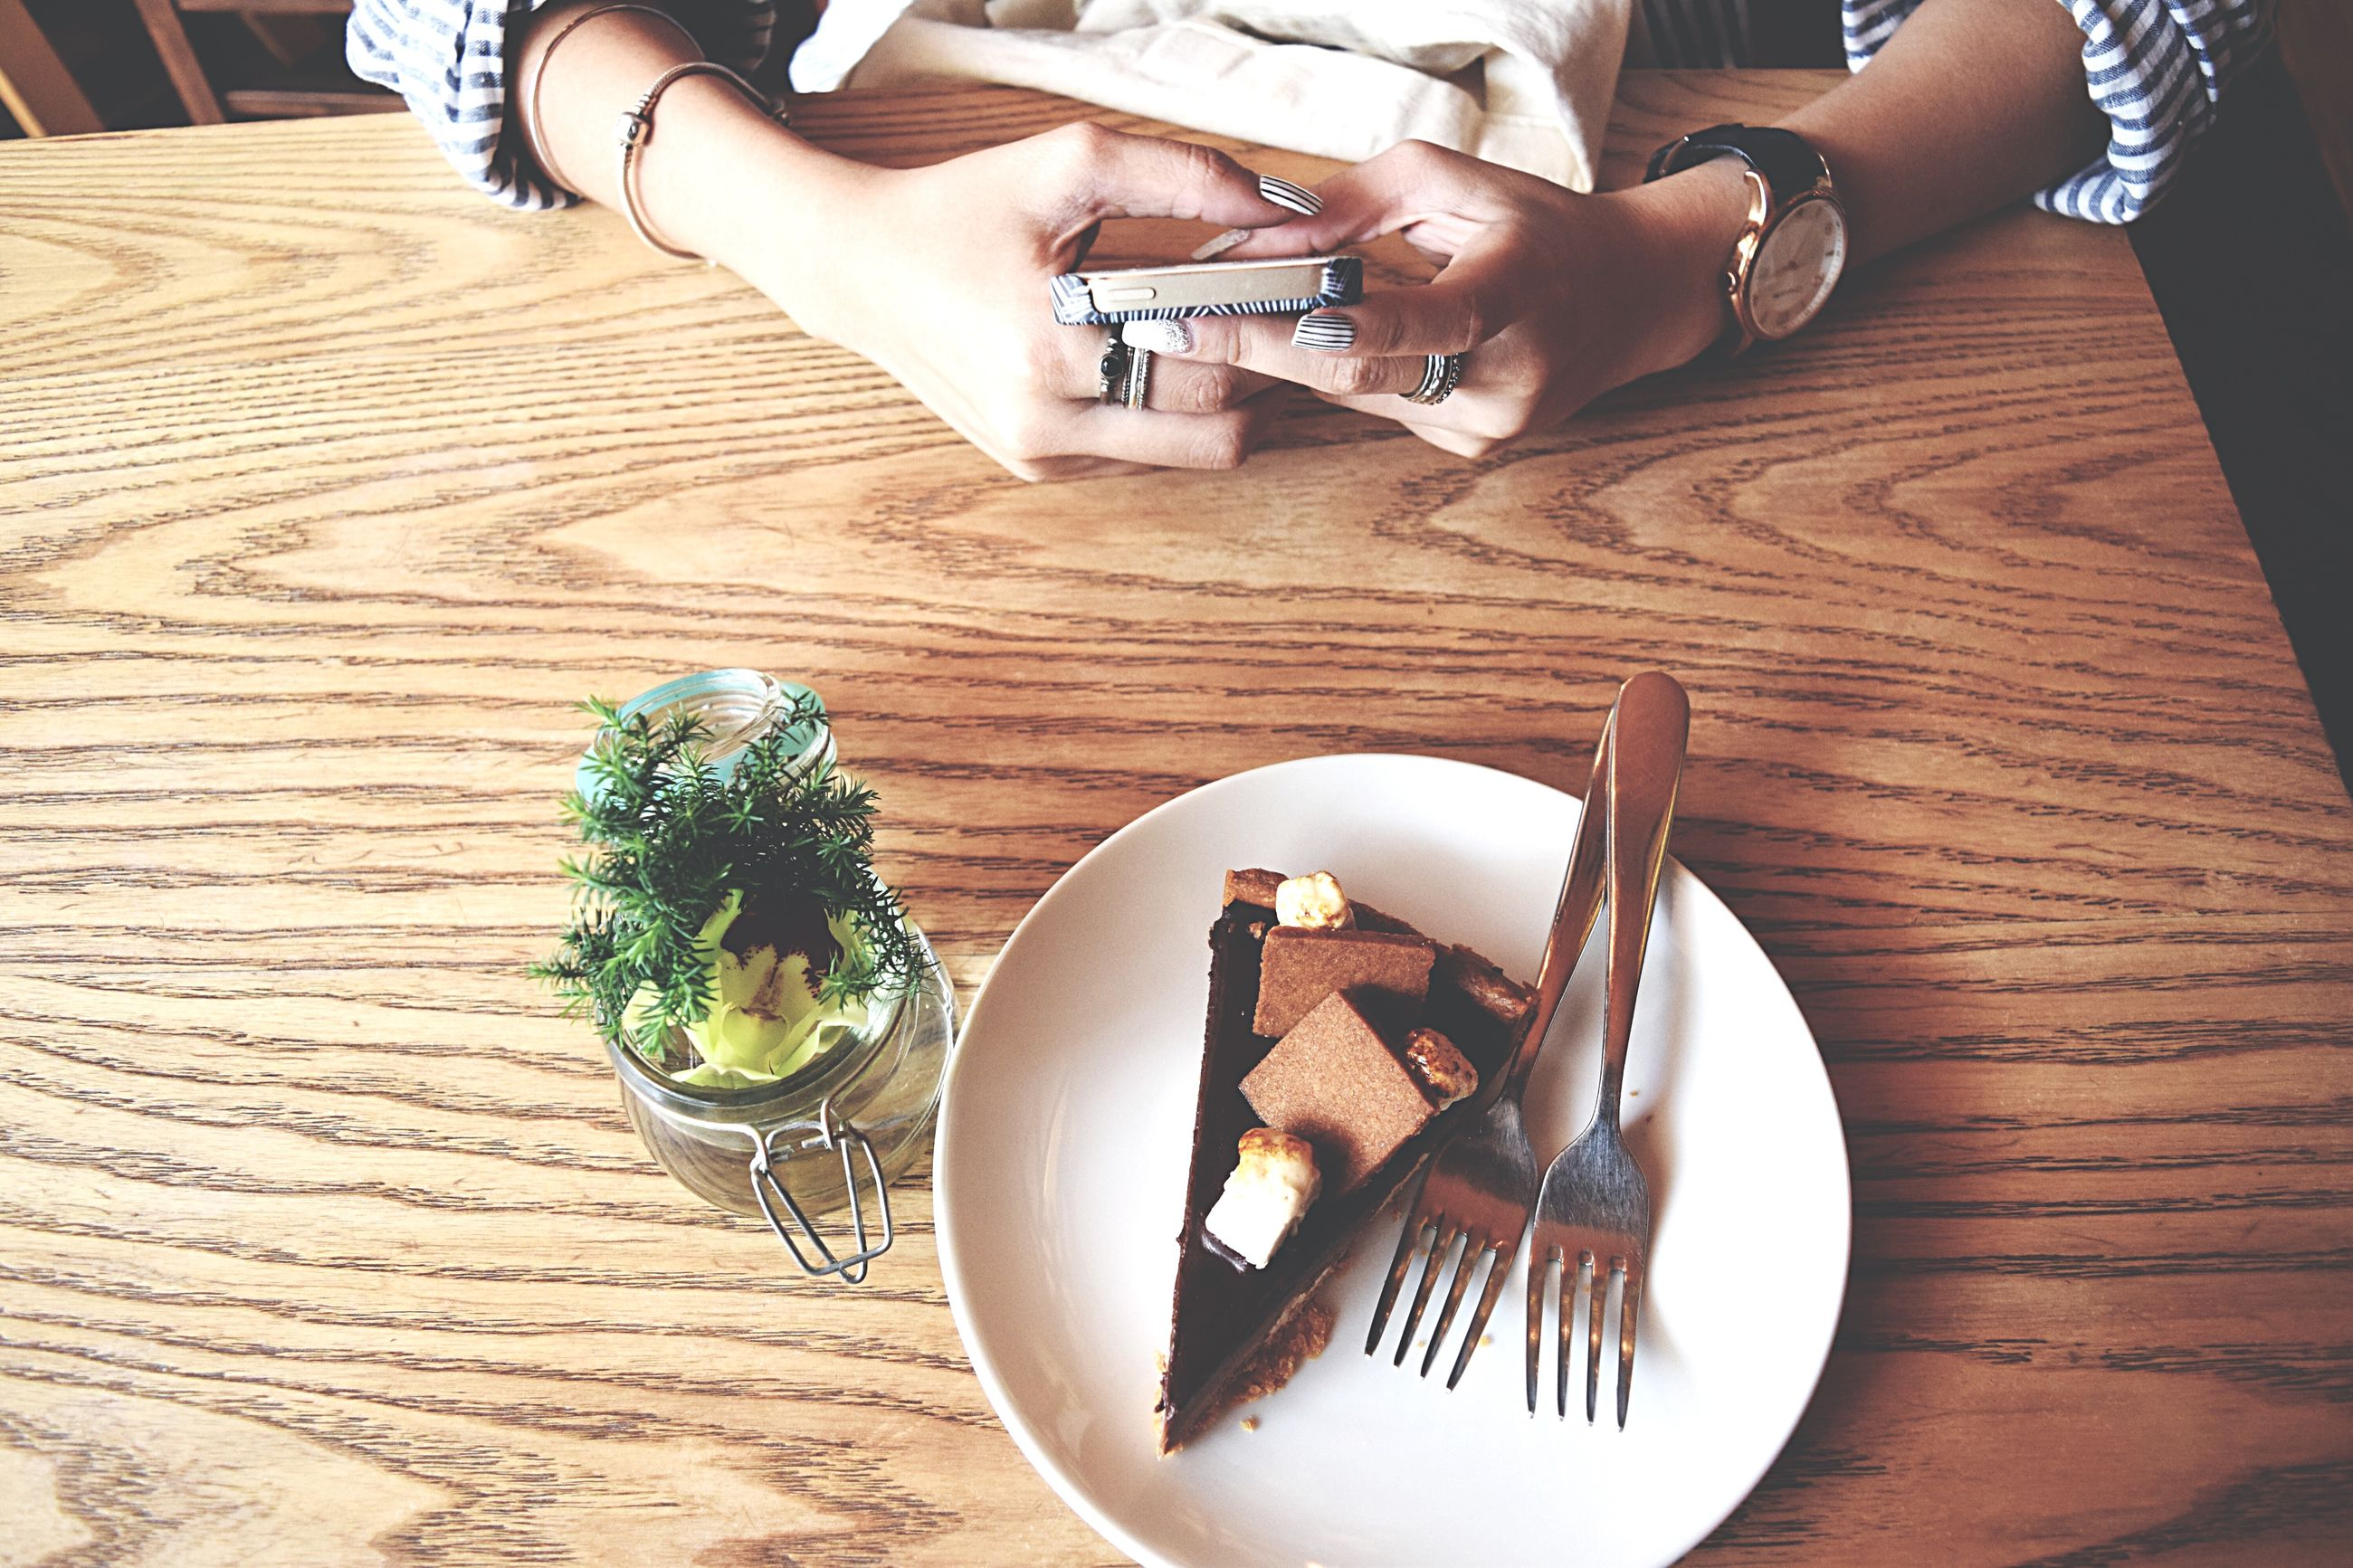 person, indoors, table, food and drink, food, plate, high angle view, part of, freshness, lifestyles, holding, leisure activity, cropped, wood - material, healthy eating, unrecognizable person